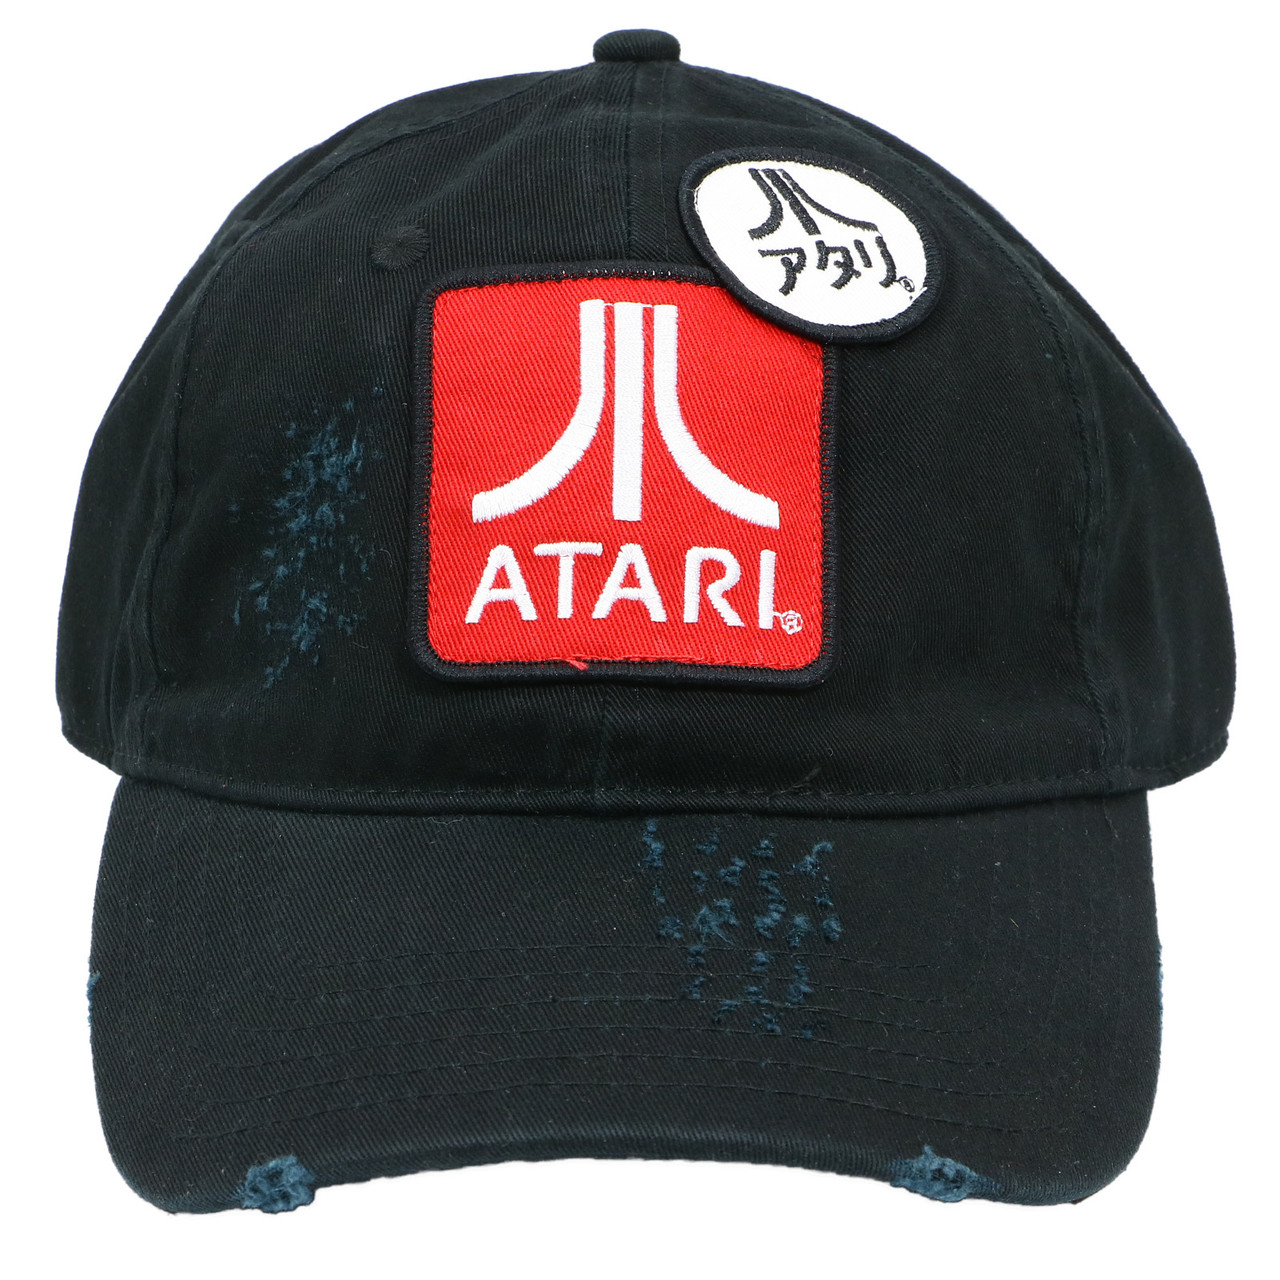 771afc7478a36 20+ H3 Sport Gear Hats Pictures and Ideas on STEM Education Caucus